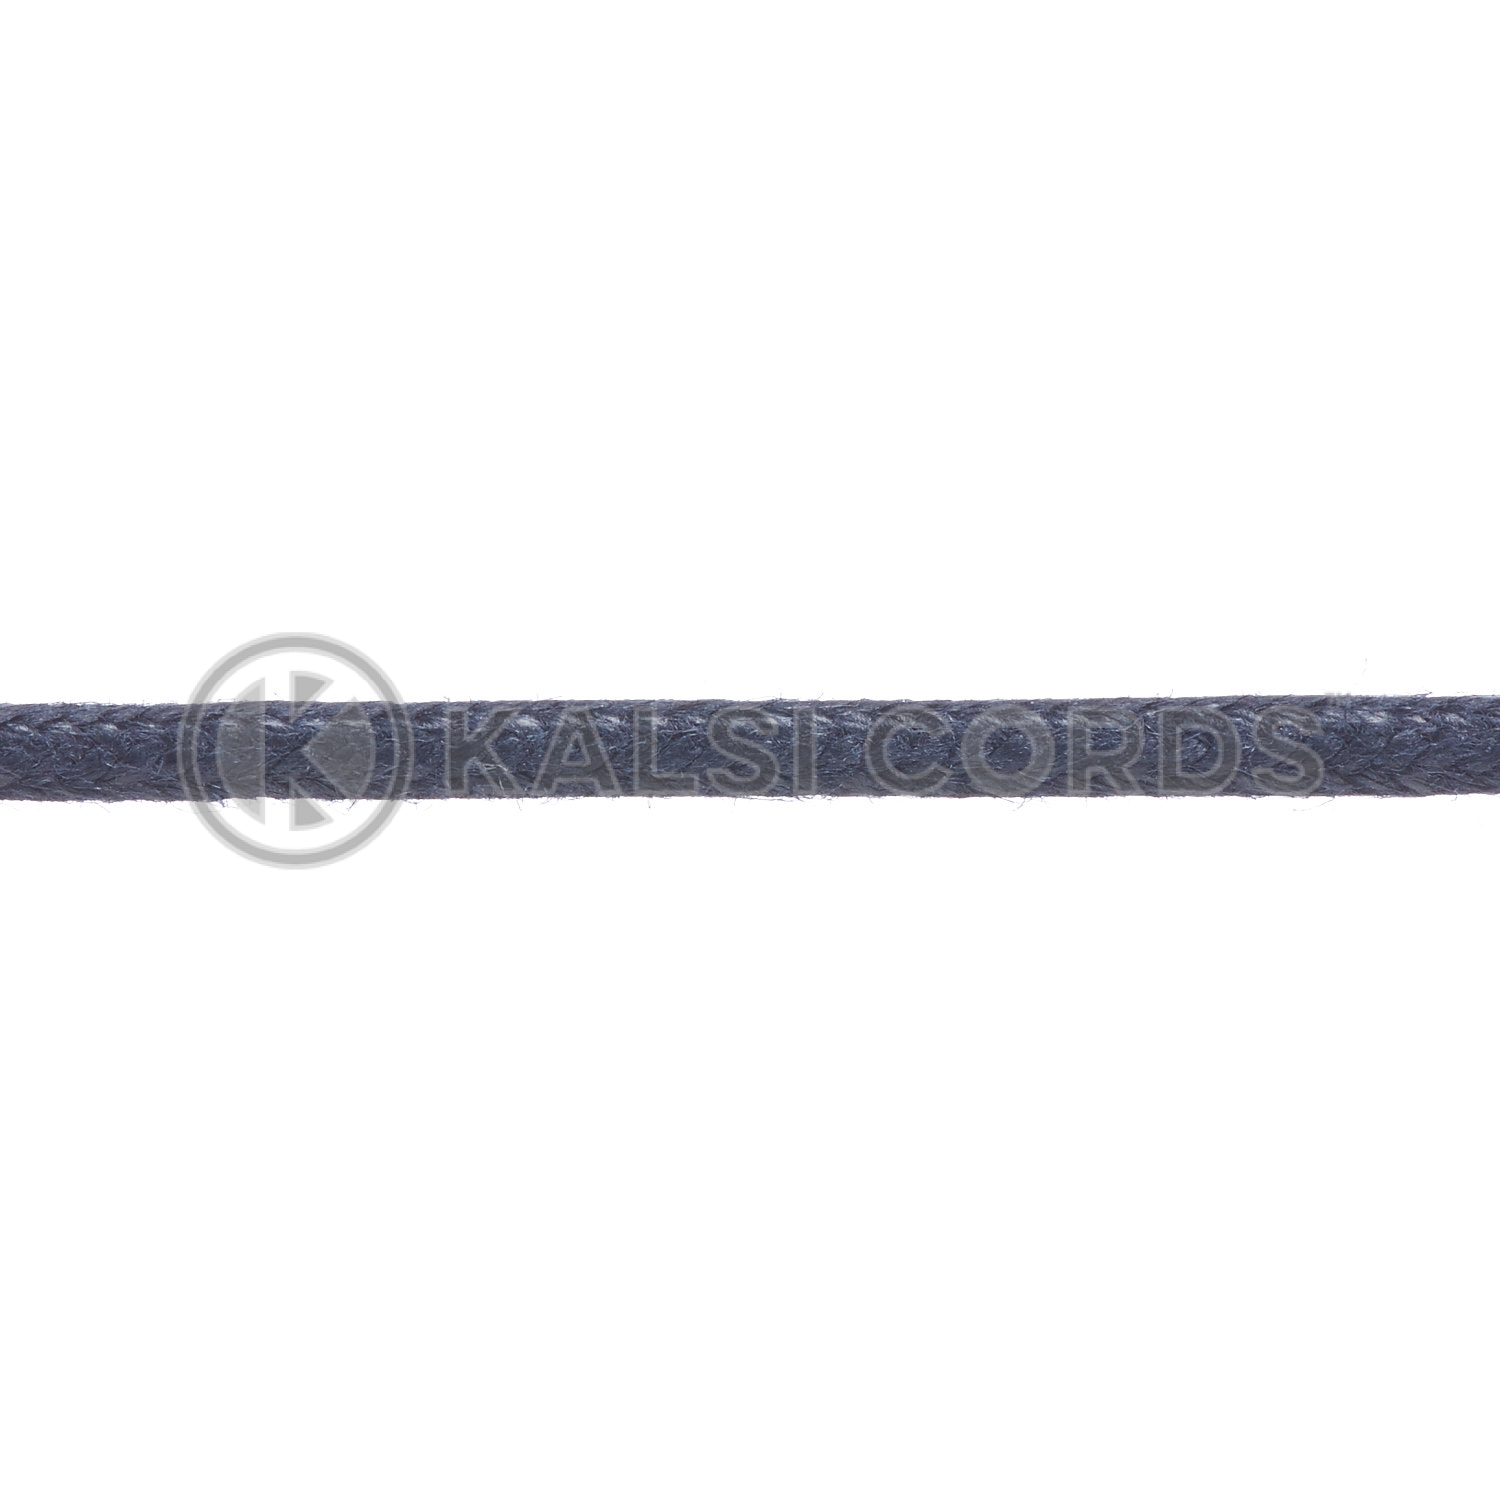 TE428 2mm Thin Fine Round Waxed Shoe Laces Cotton Dark Navy Kalsi Cords